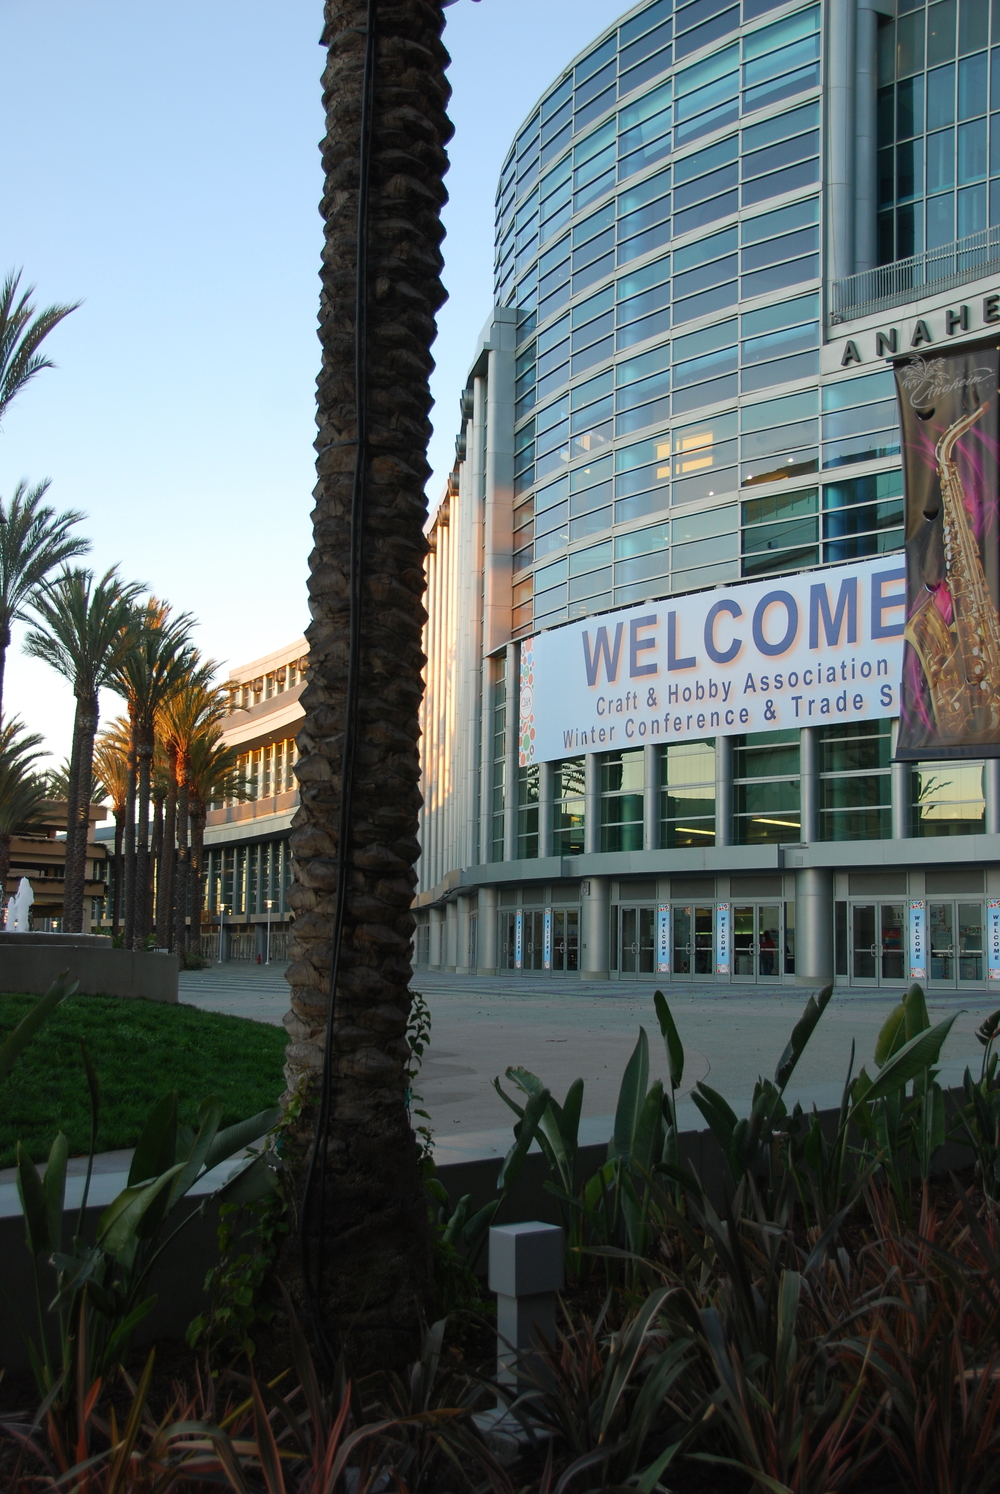 the Anaheim convention center was an ideal venue